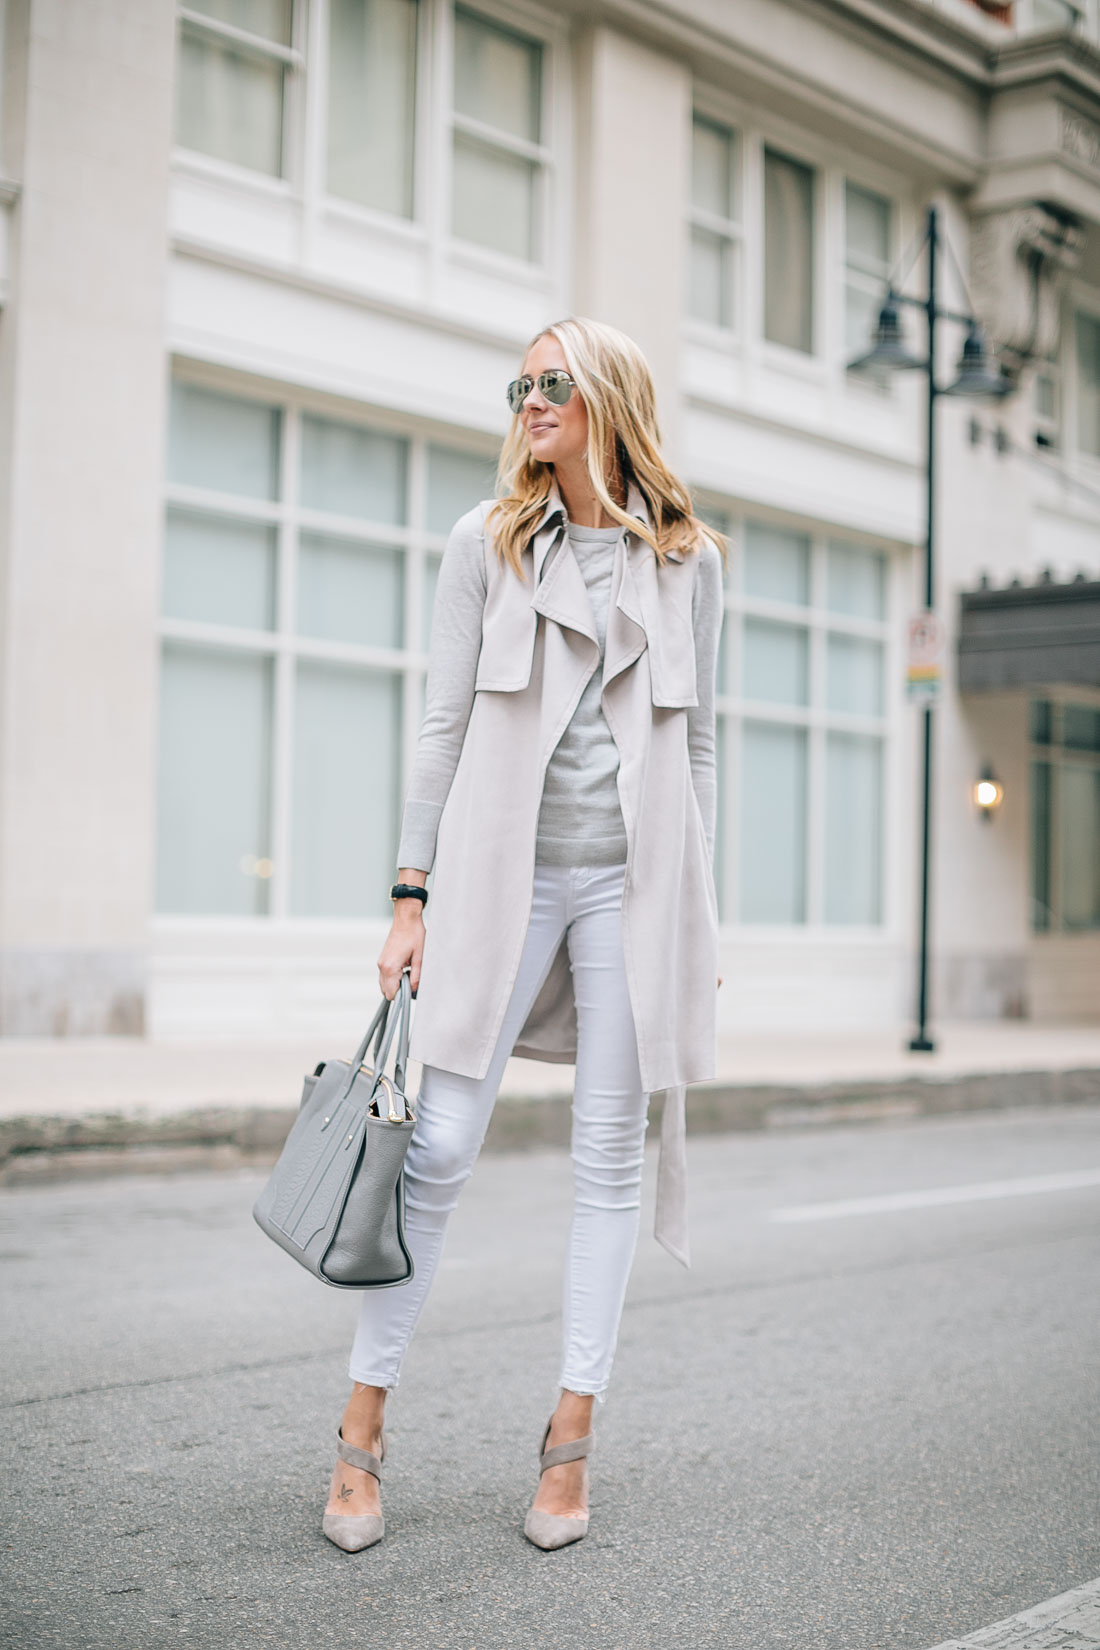 fashion-jackson-club-monaco-trench-vest-white-skinny-jeans-grey-sweater-gigi-new-york-grey-tote